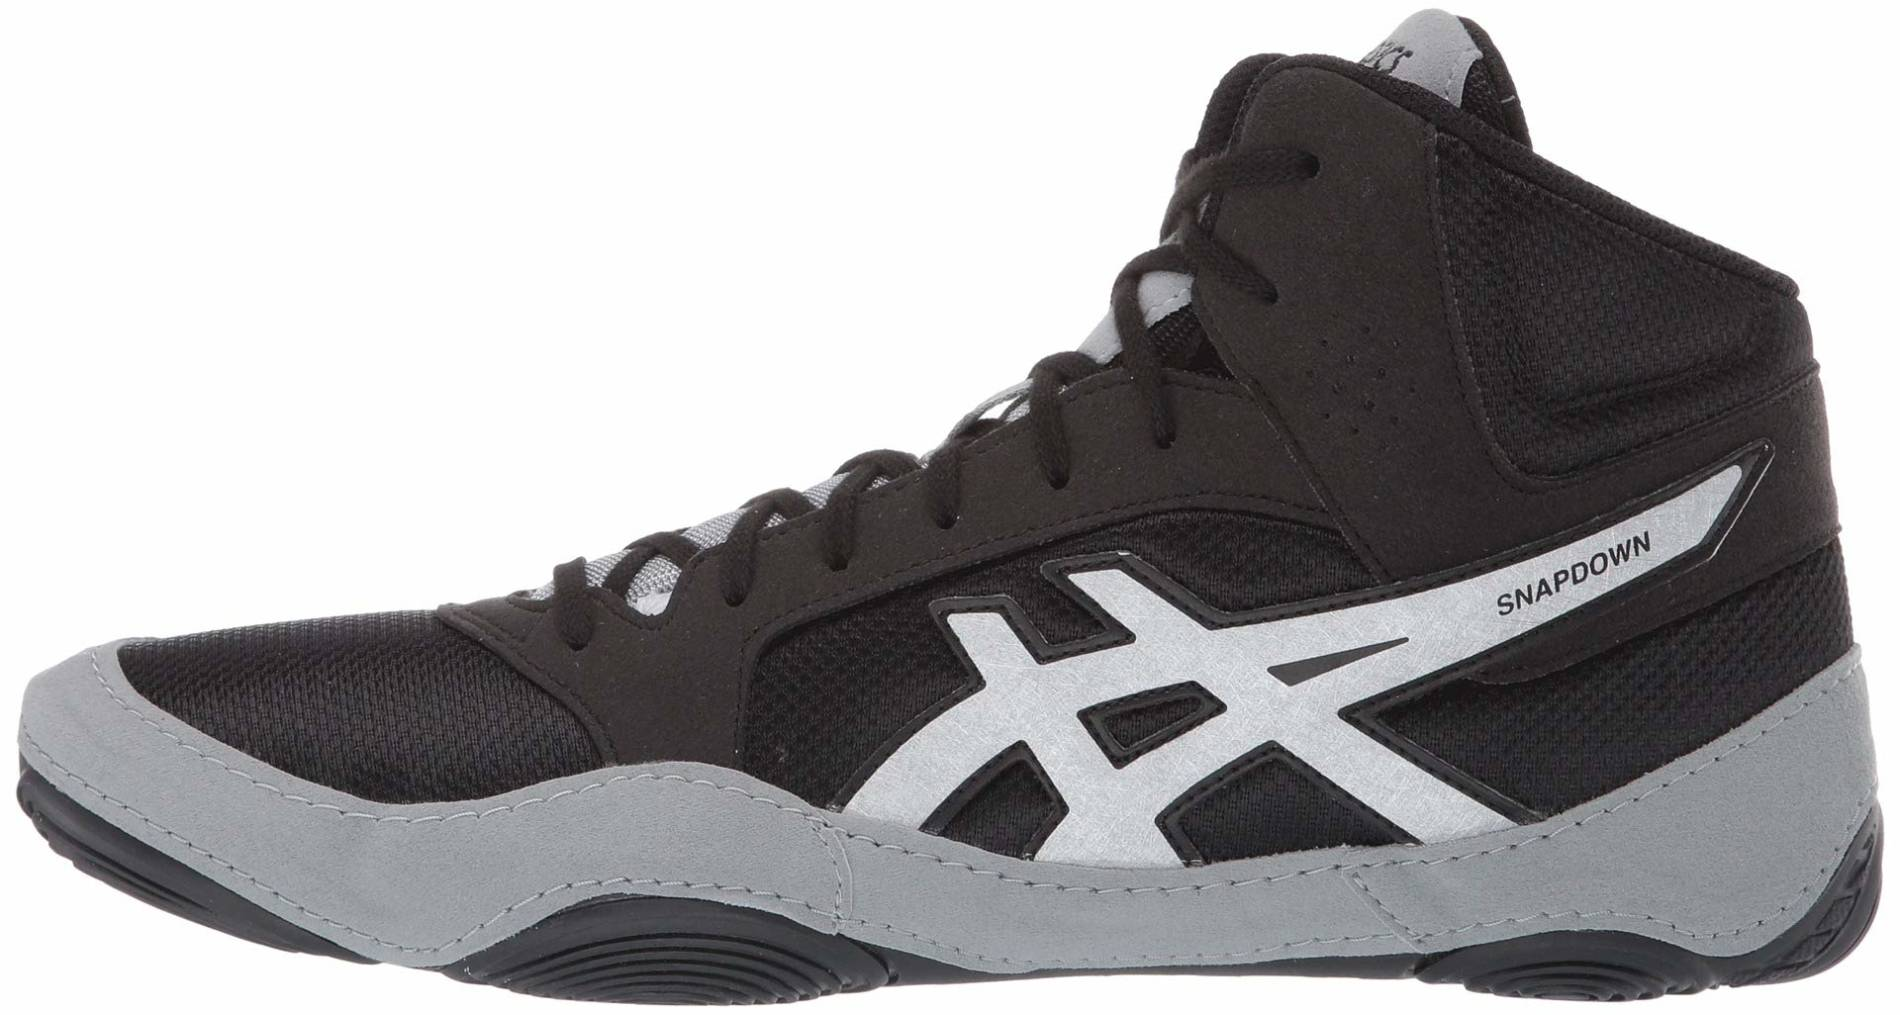 $70 + Review of Asics Snapdown | RunRepeat